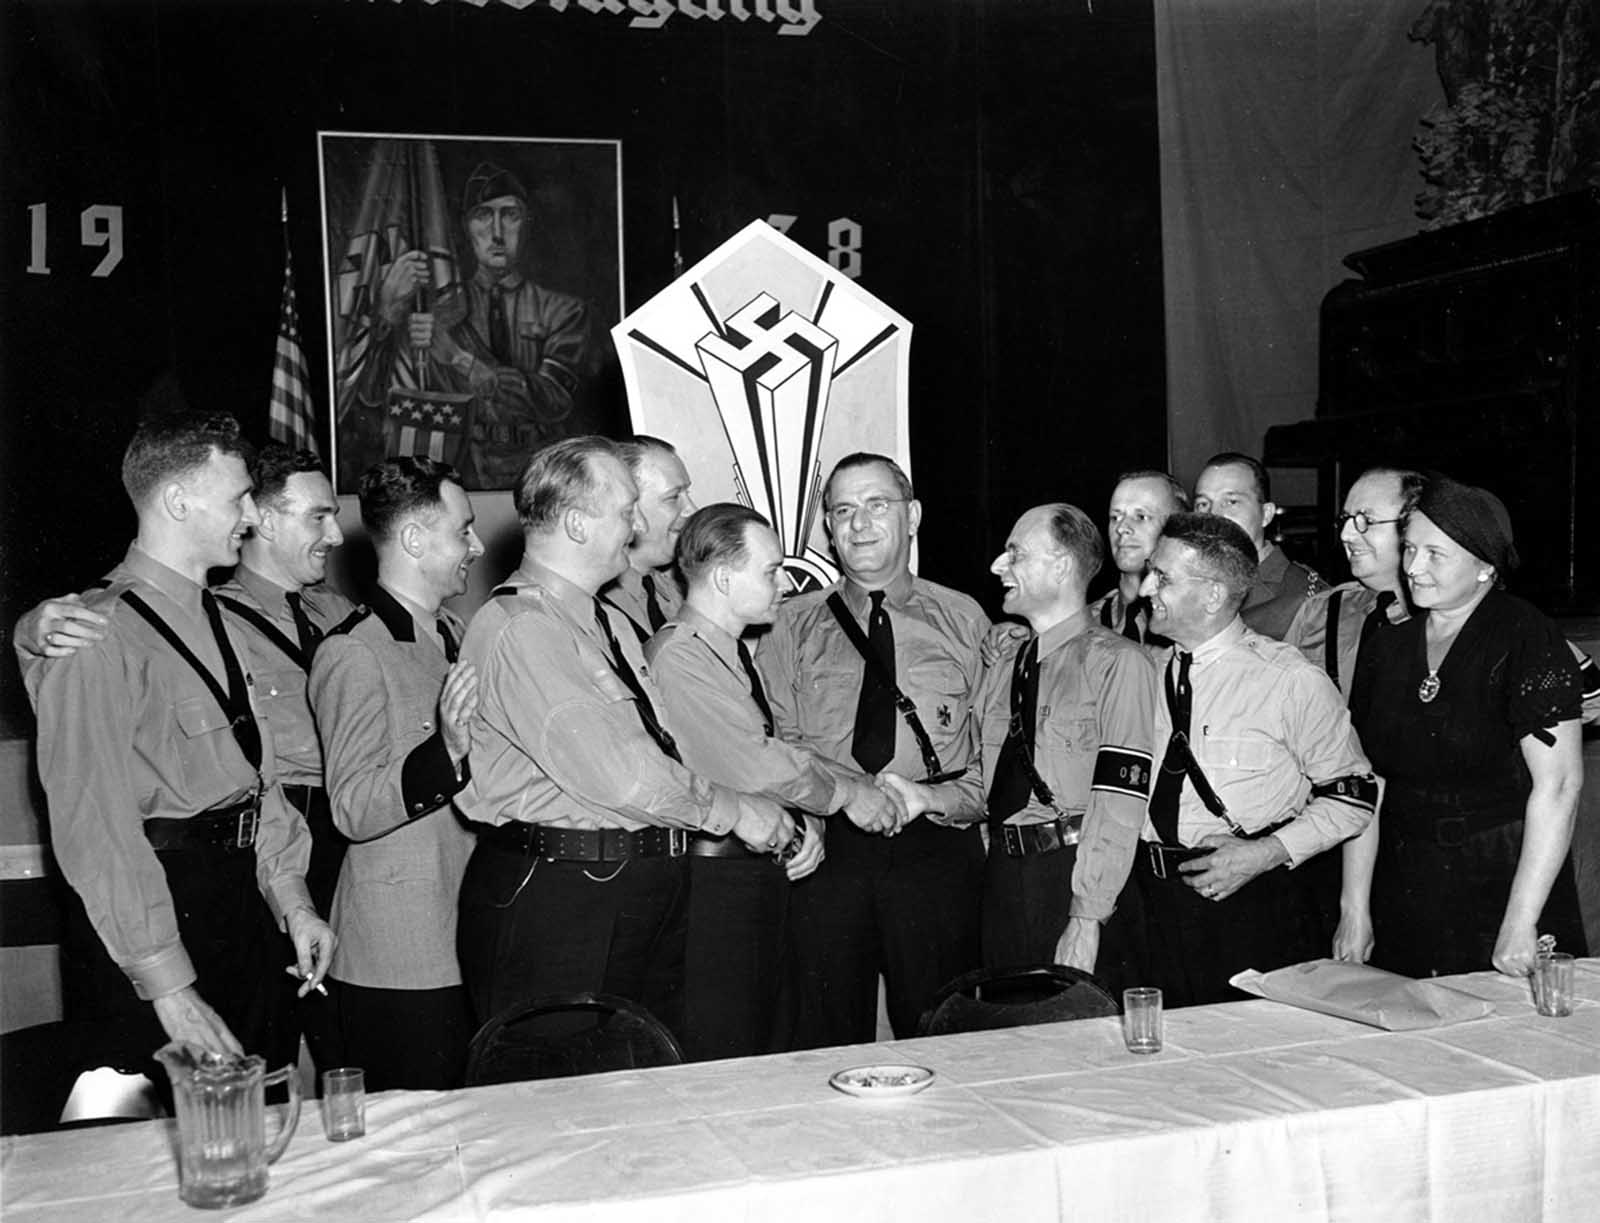 Fritz Kuhn, center facing forward, is congratulated by fellow officers of the German-American Bund in New York on September 4, 1938. Kuhn was unanimously re-elected on September 3 as National leader of the Bund, a pro-Nazi organization holding its sixth annual convention.